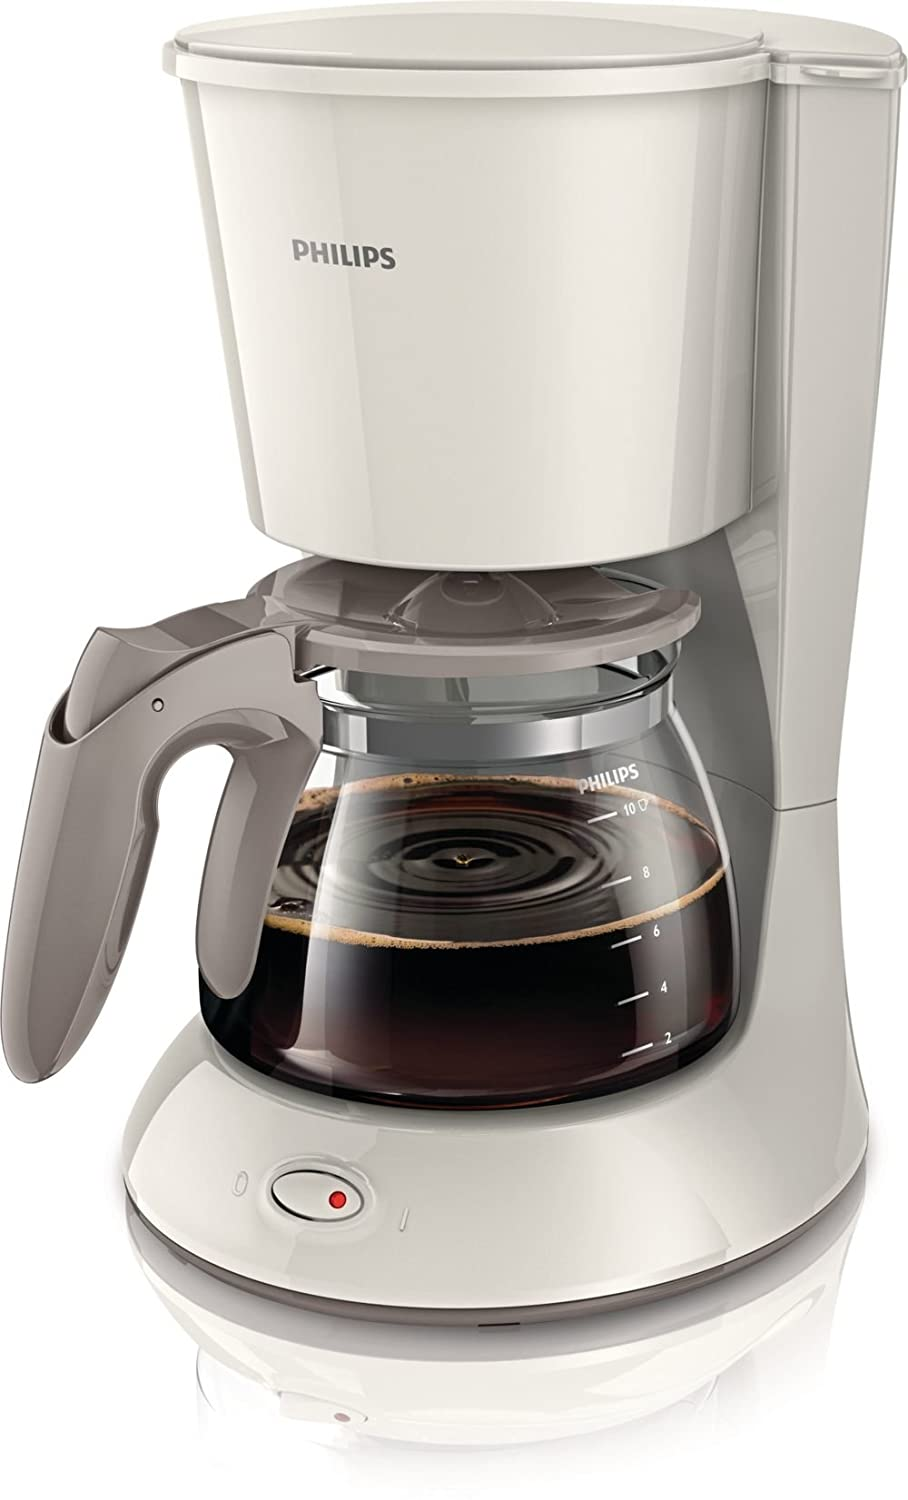 Philips Coffee Maker / Machine / Cafetiere Drip Stop ...